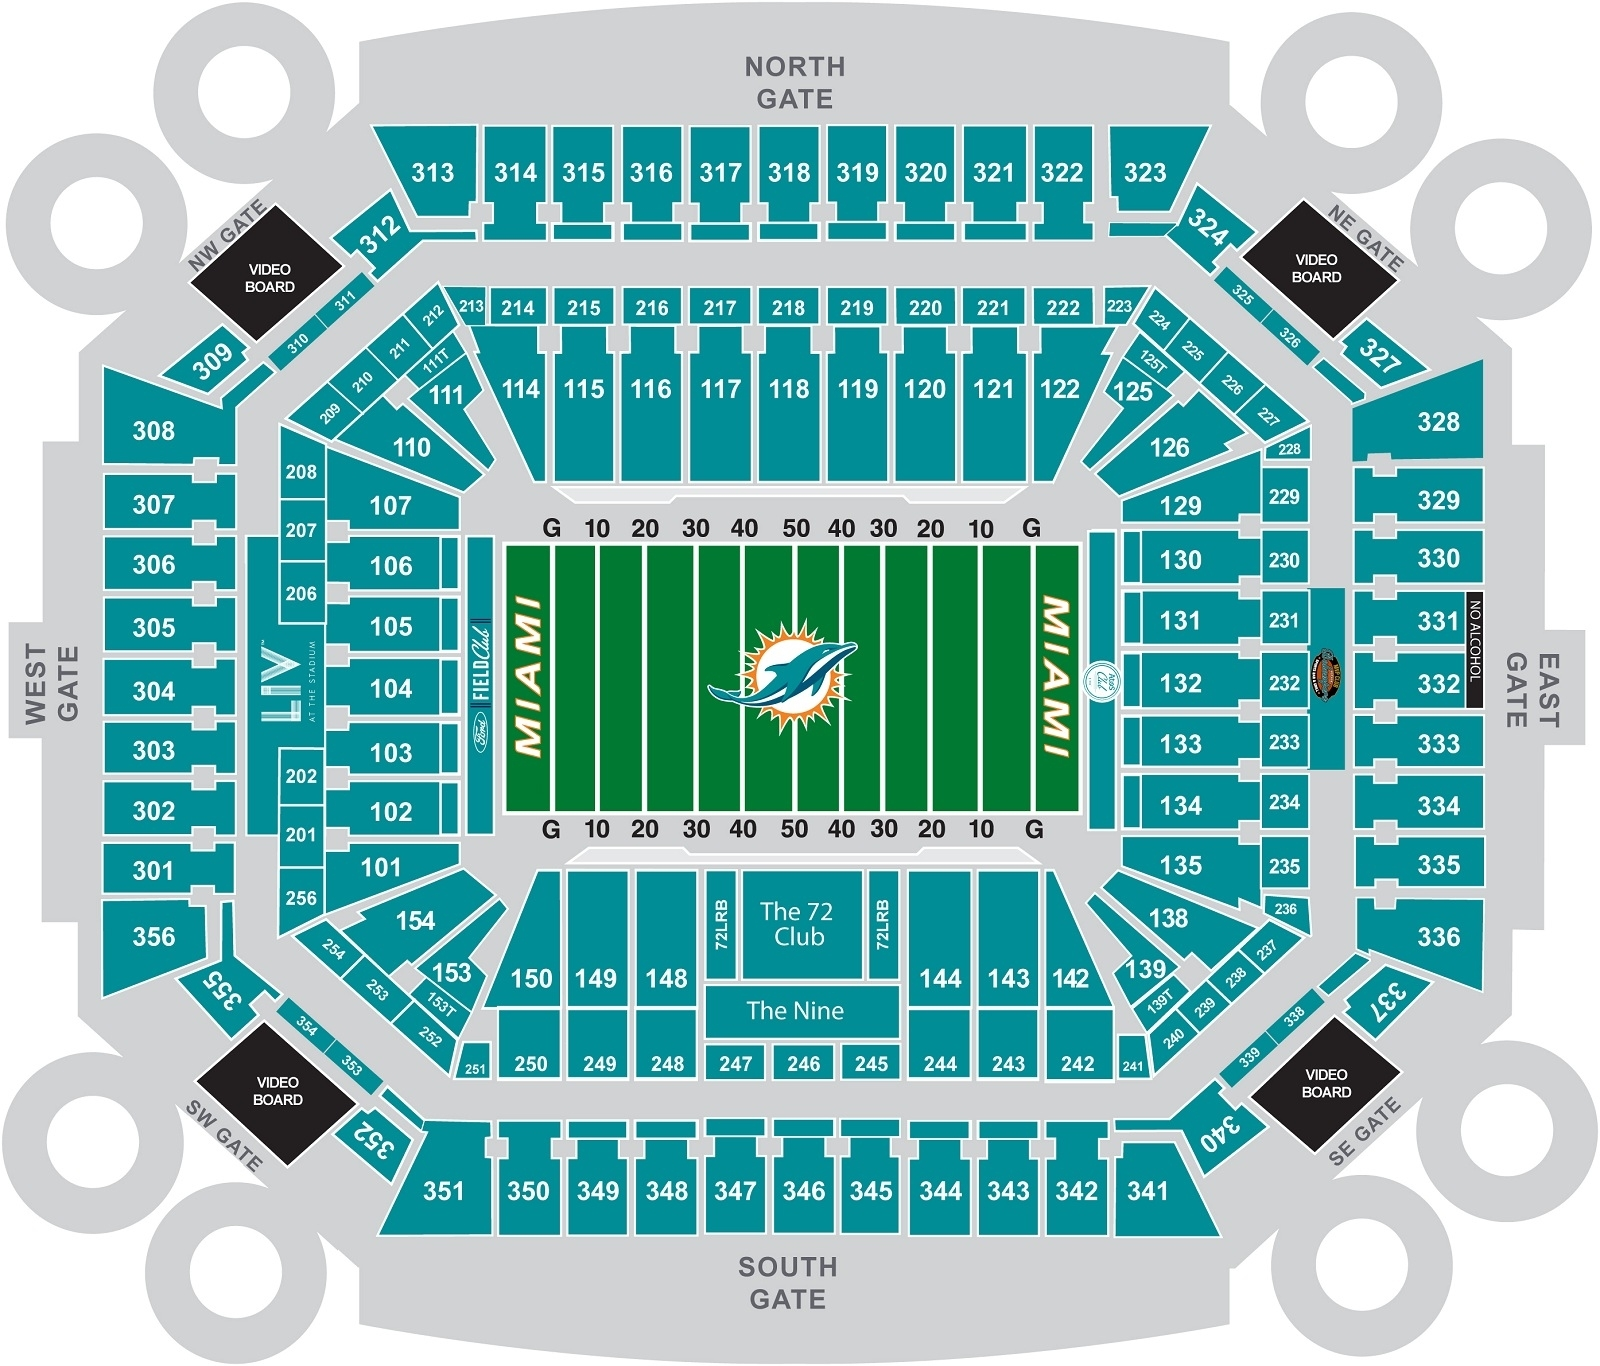 2020 Super Bowl Seating Chart | February 2, 2020 | Fan regarding Seating Chart For Super Bowl